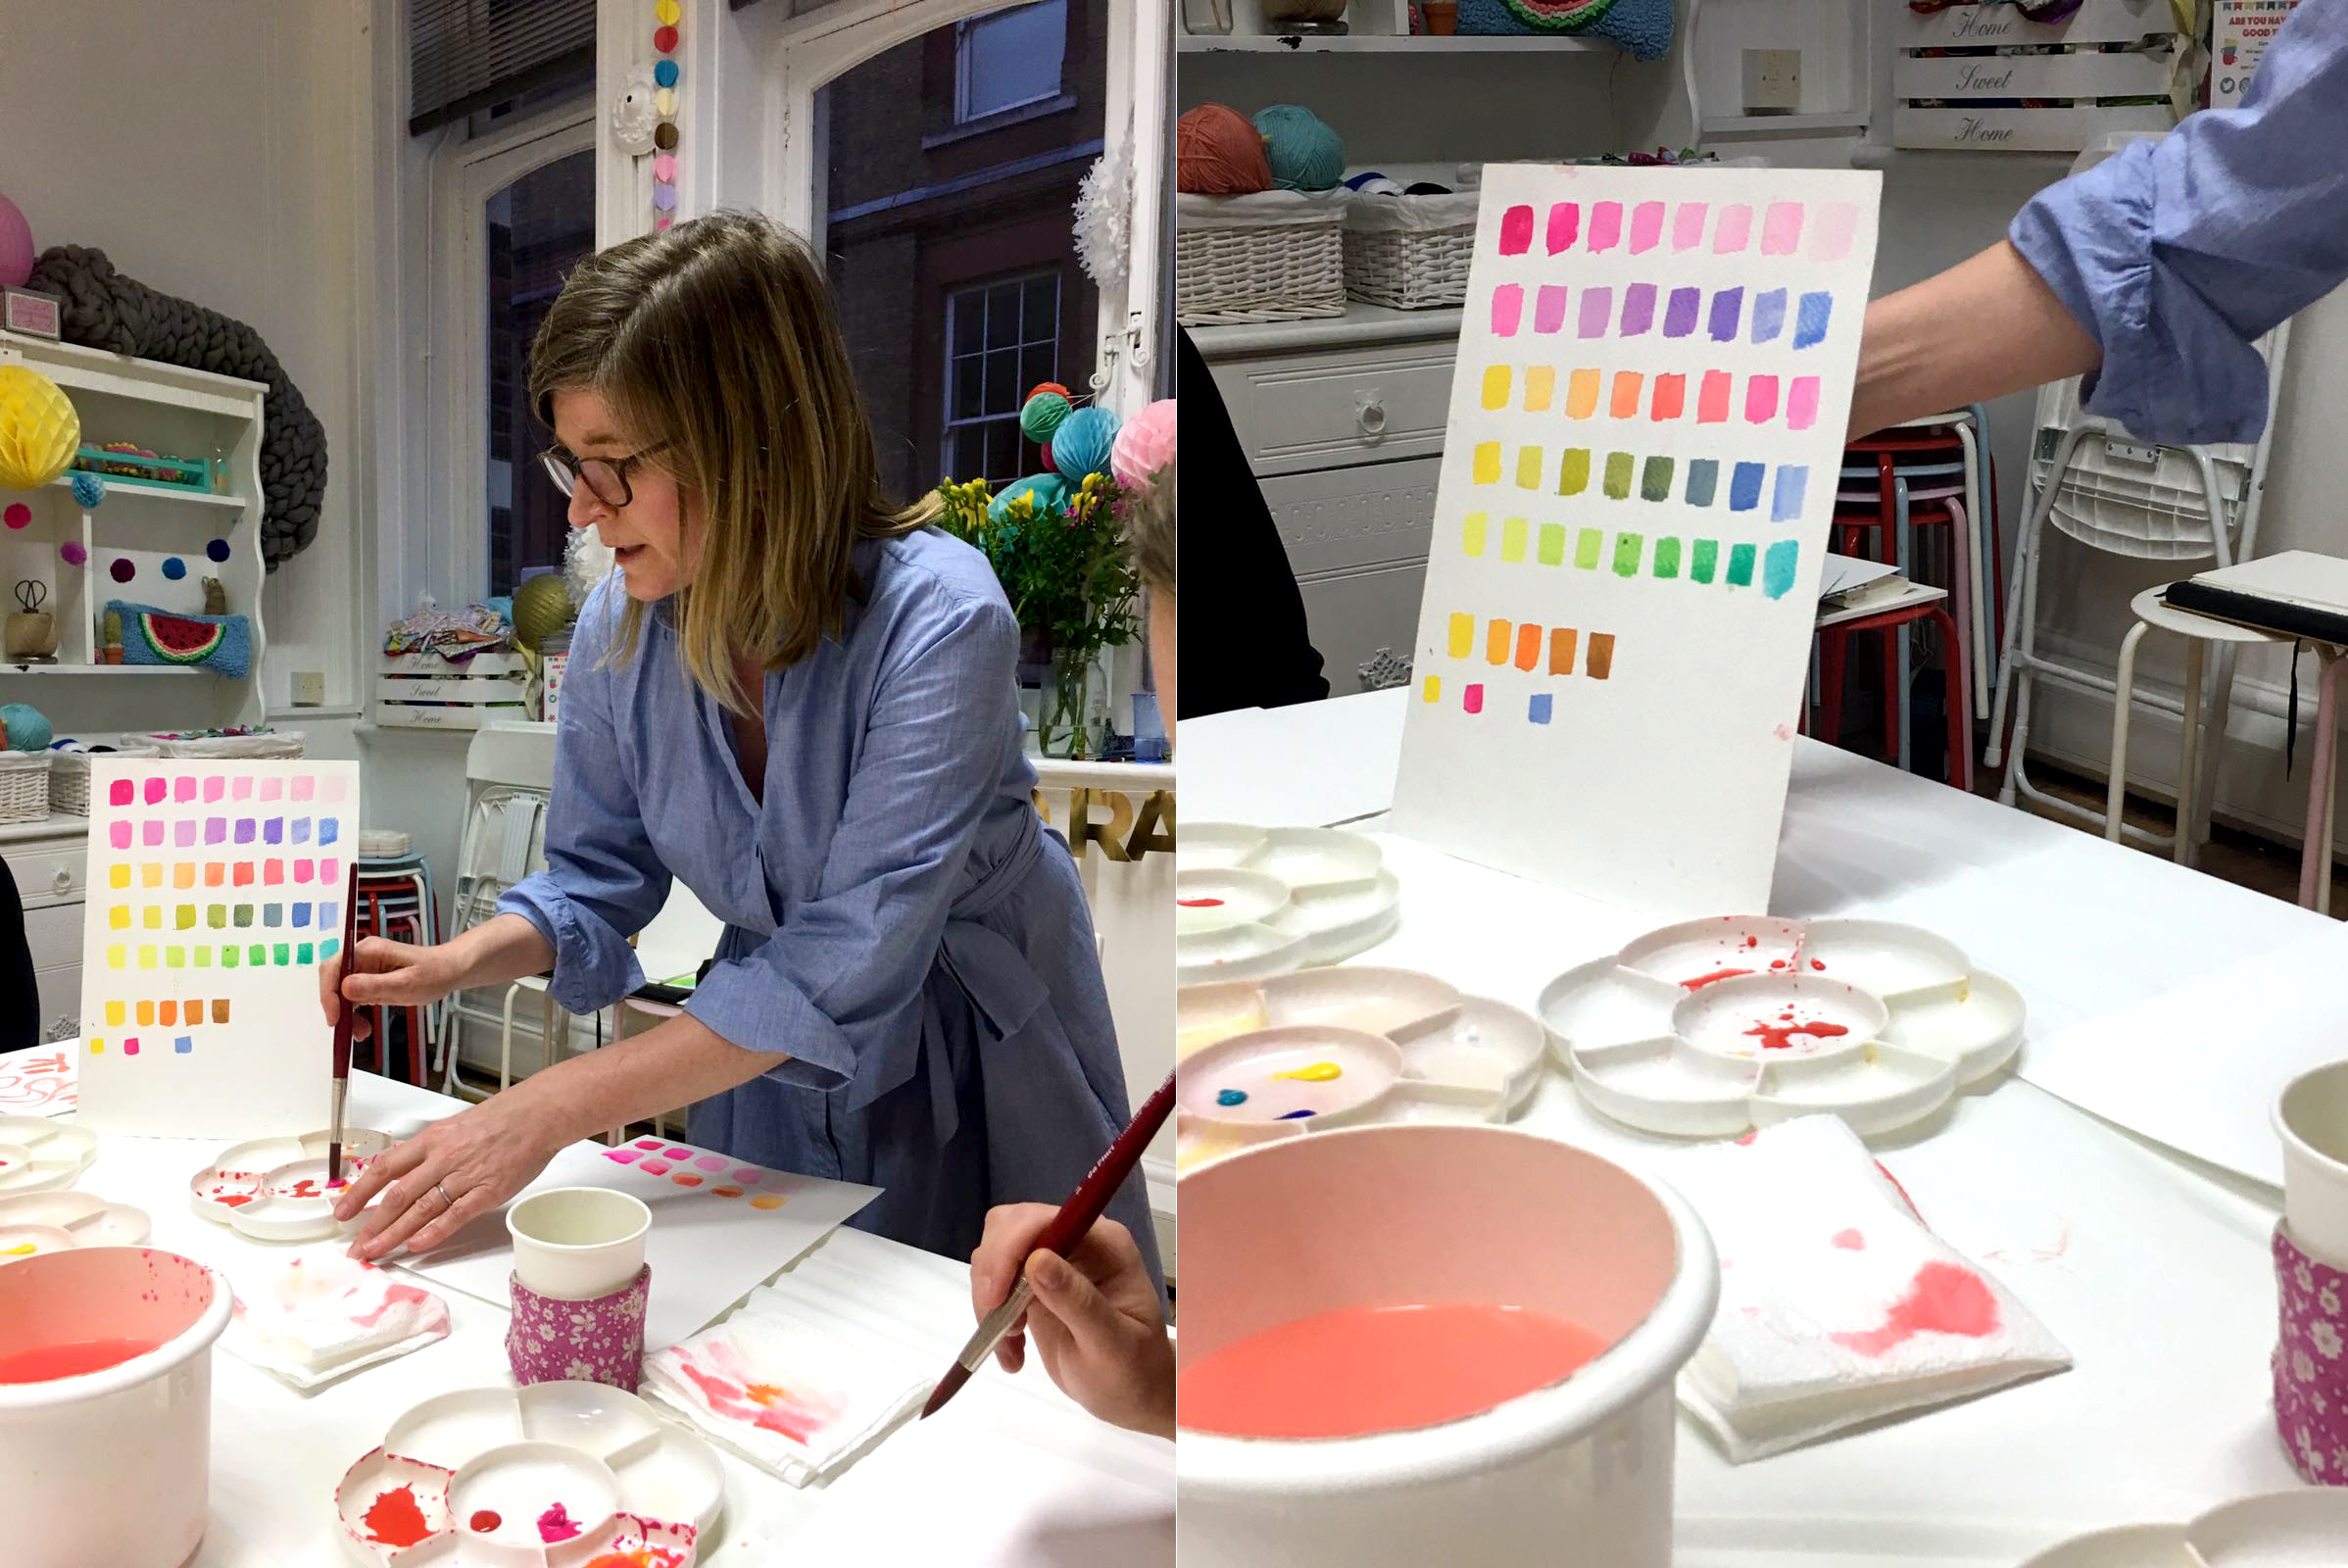 Watercolour workshop at Tea and Crafting in Covent Garden London